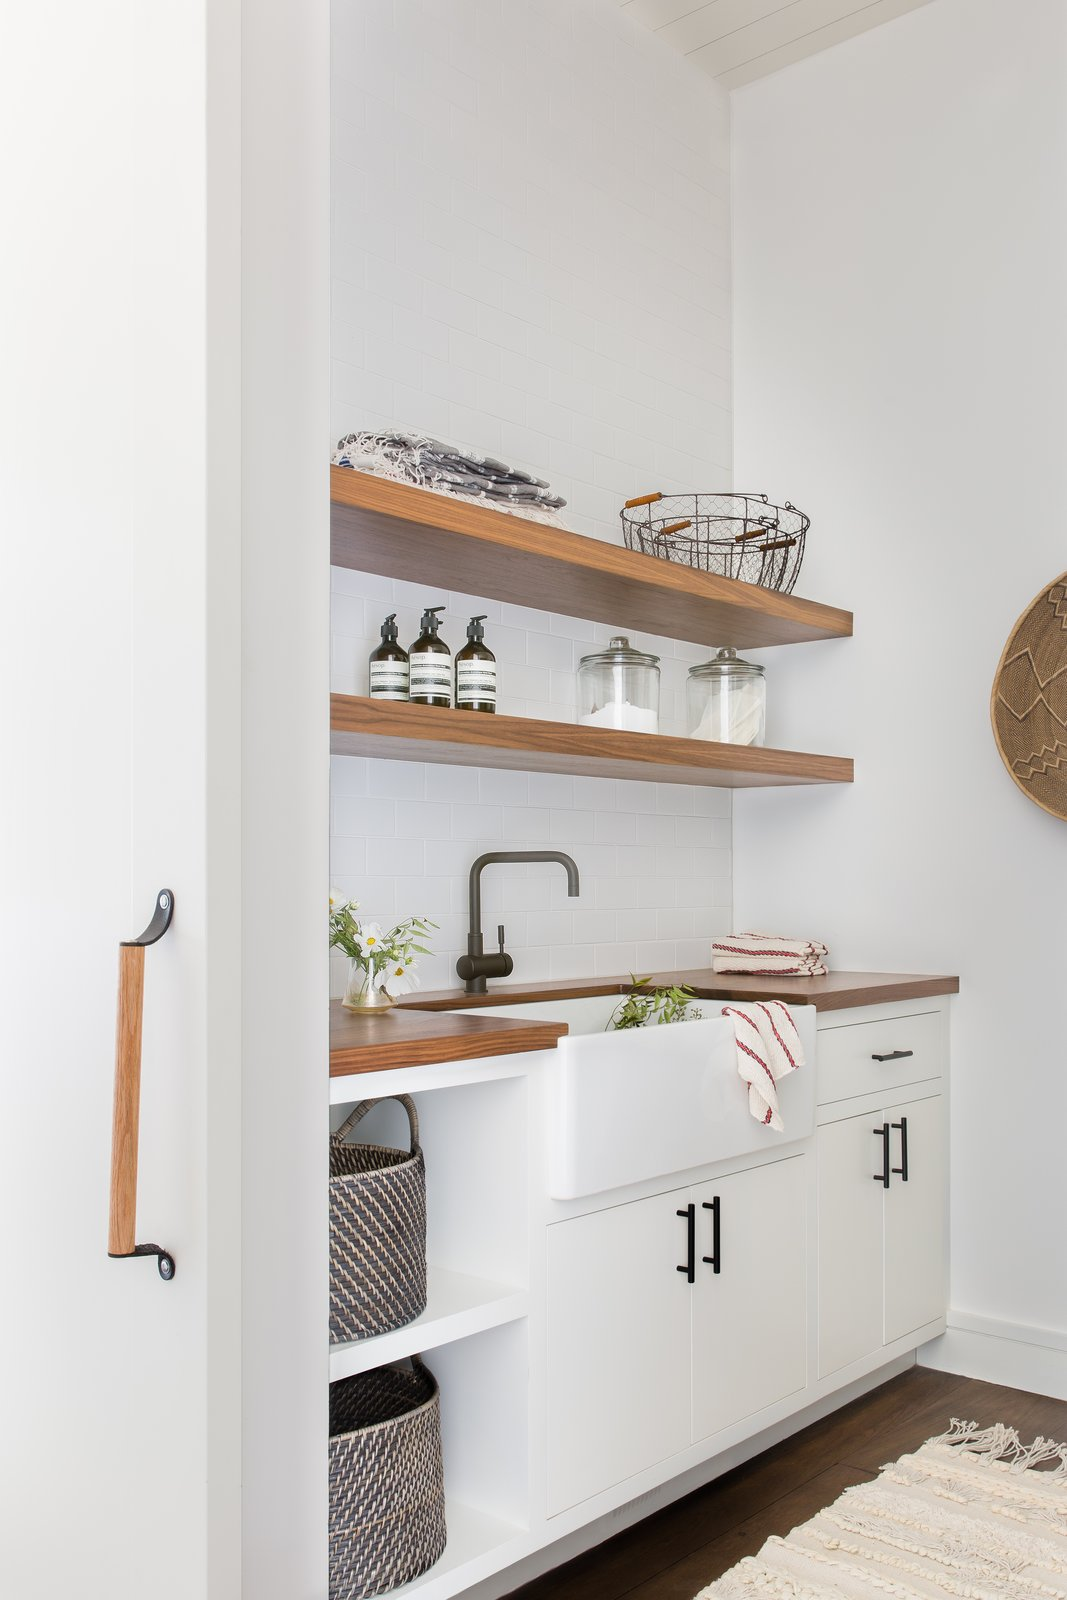 Laundry Room, Wood Counter, and White Cabinet The laundry room is simple and efficient.  Photo 9 of 20 in A Sleek Lake Tahoe Retreat Shows Off an Impressive Art Collection